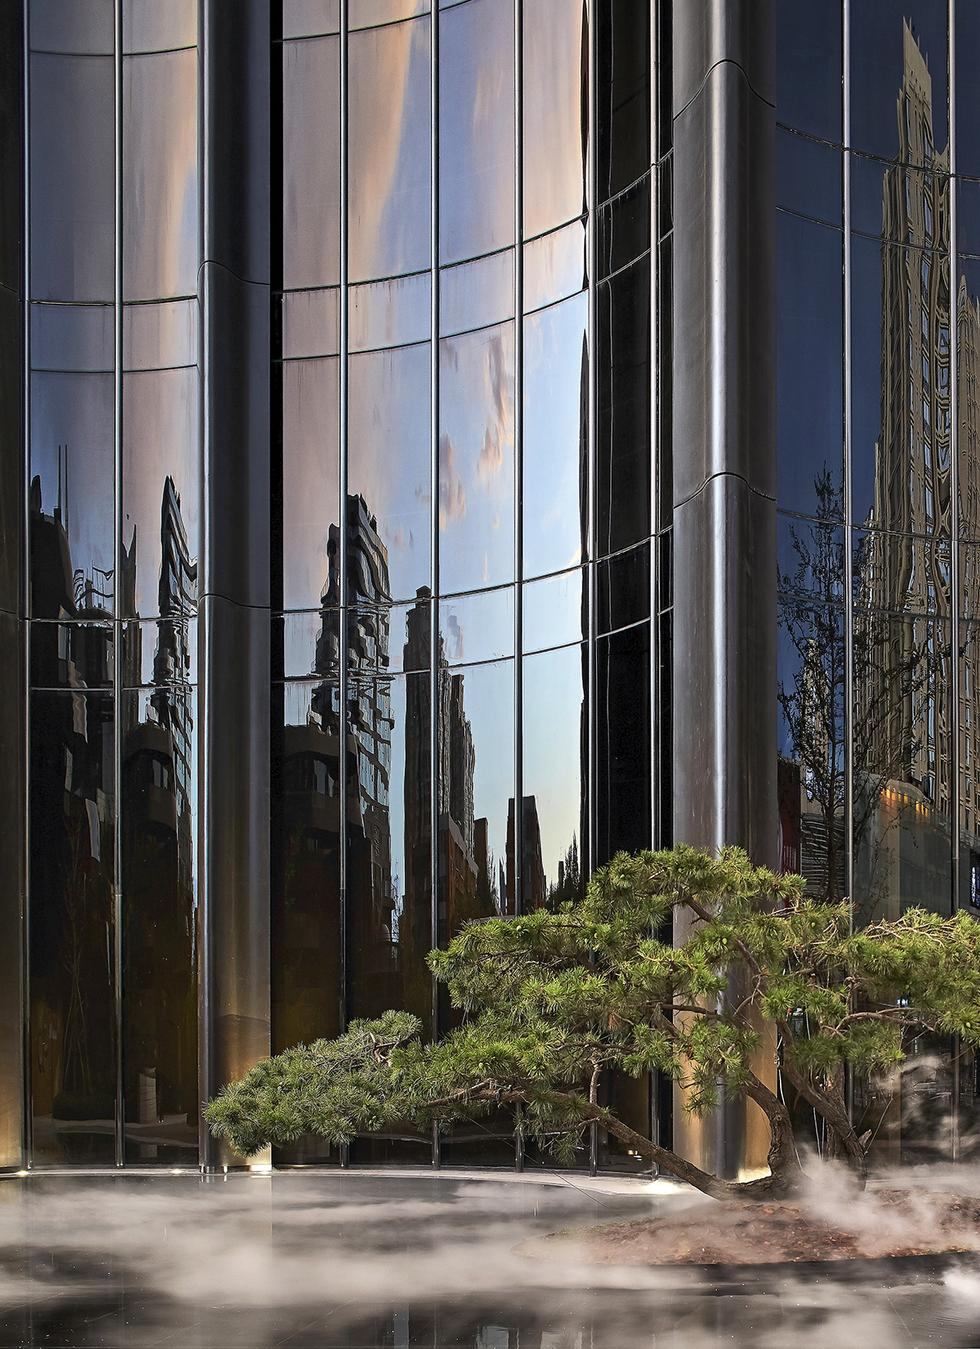 MAD_Chaoyang Park Plaza_by Hufton+Crow_21